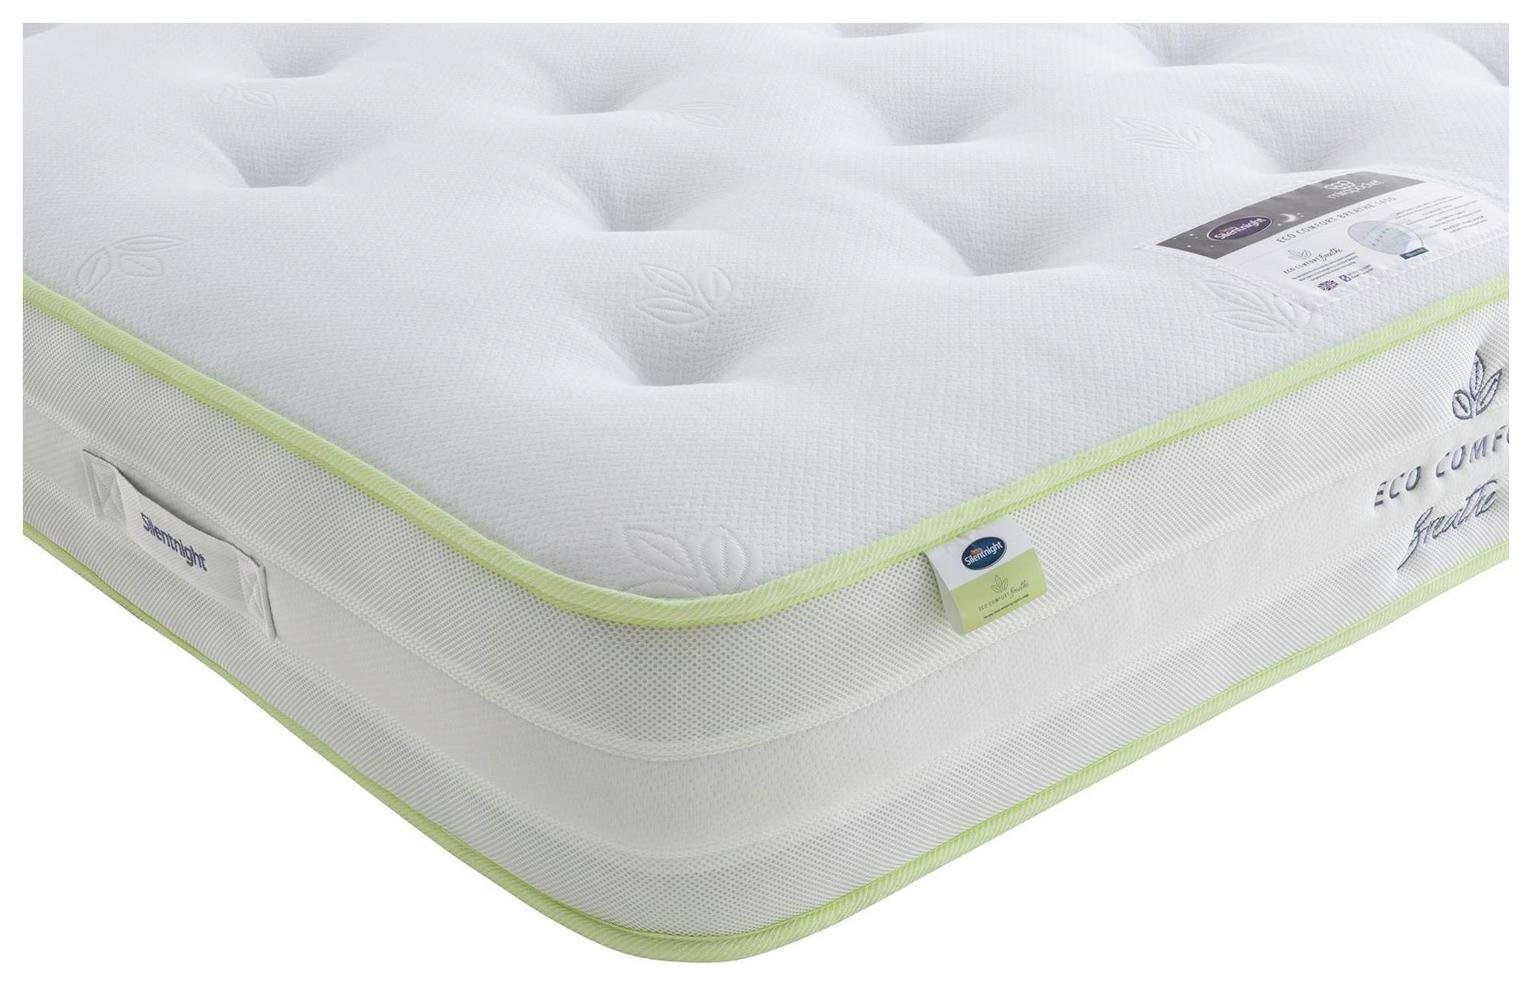 Silentnight Eco Comfort Breathe 1400 Kingsize Mattress